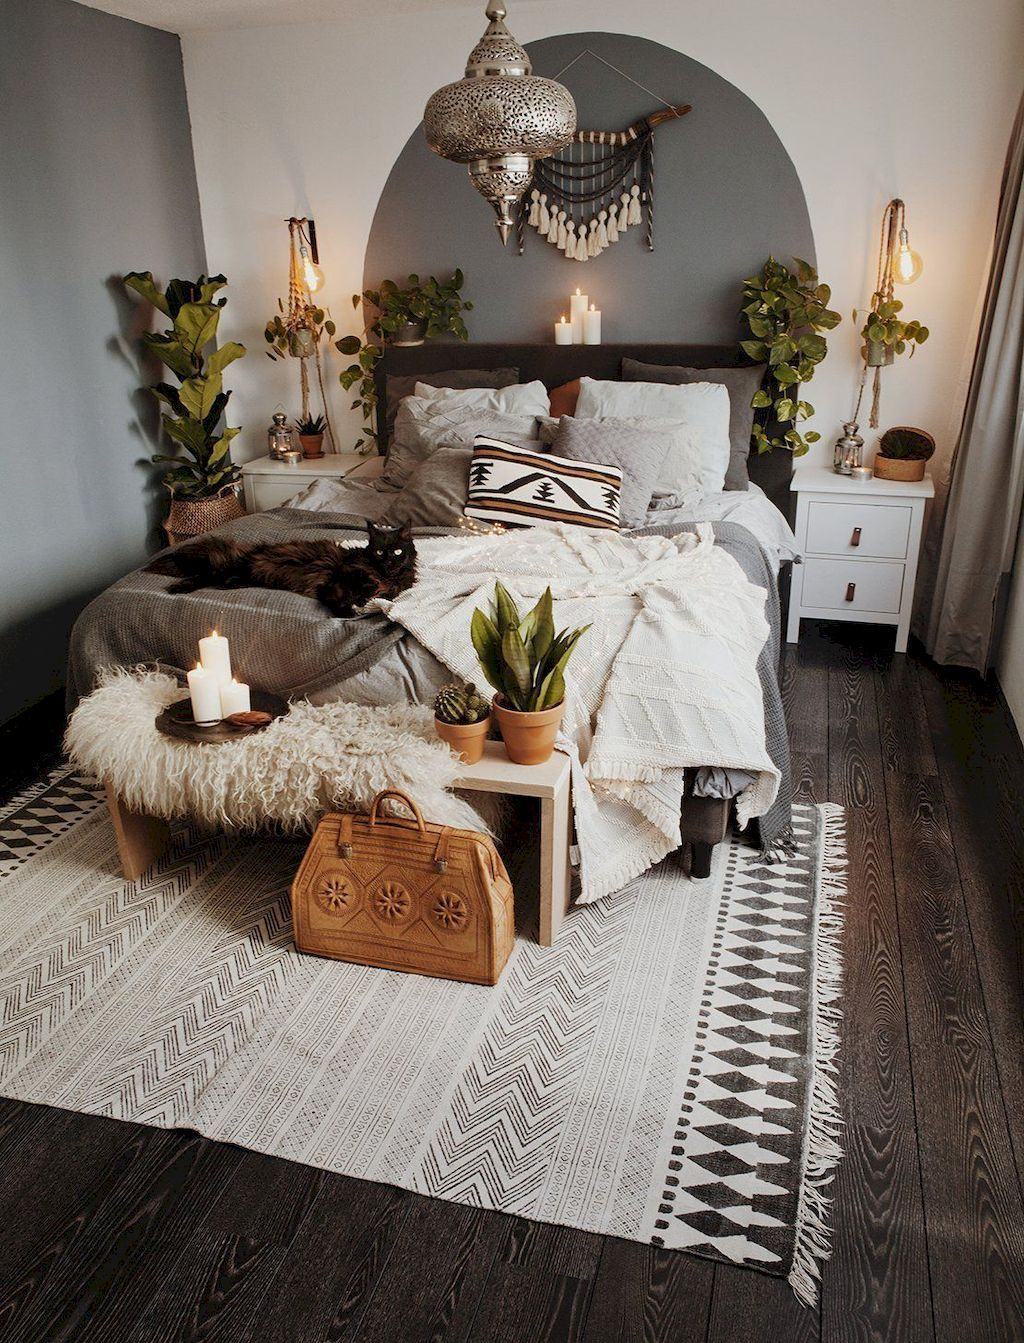 Bedroom-ideas-layered throws